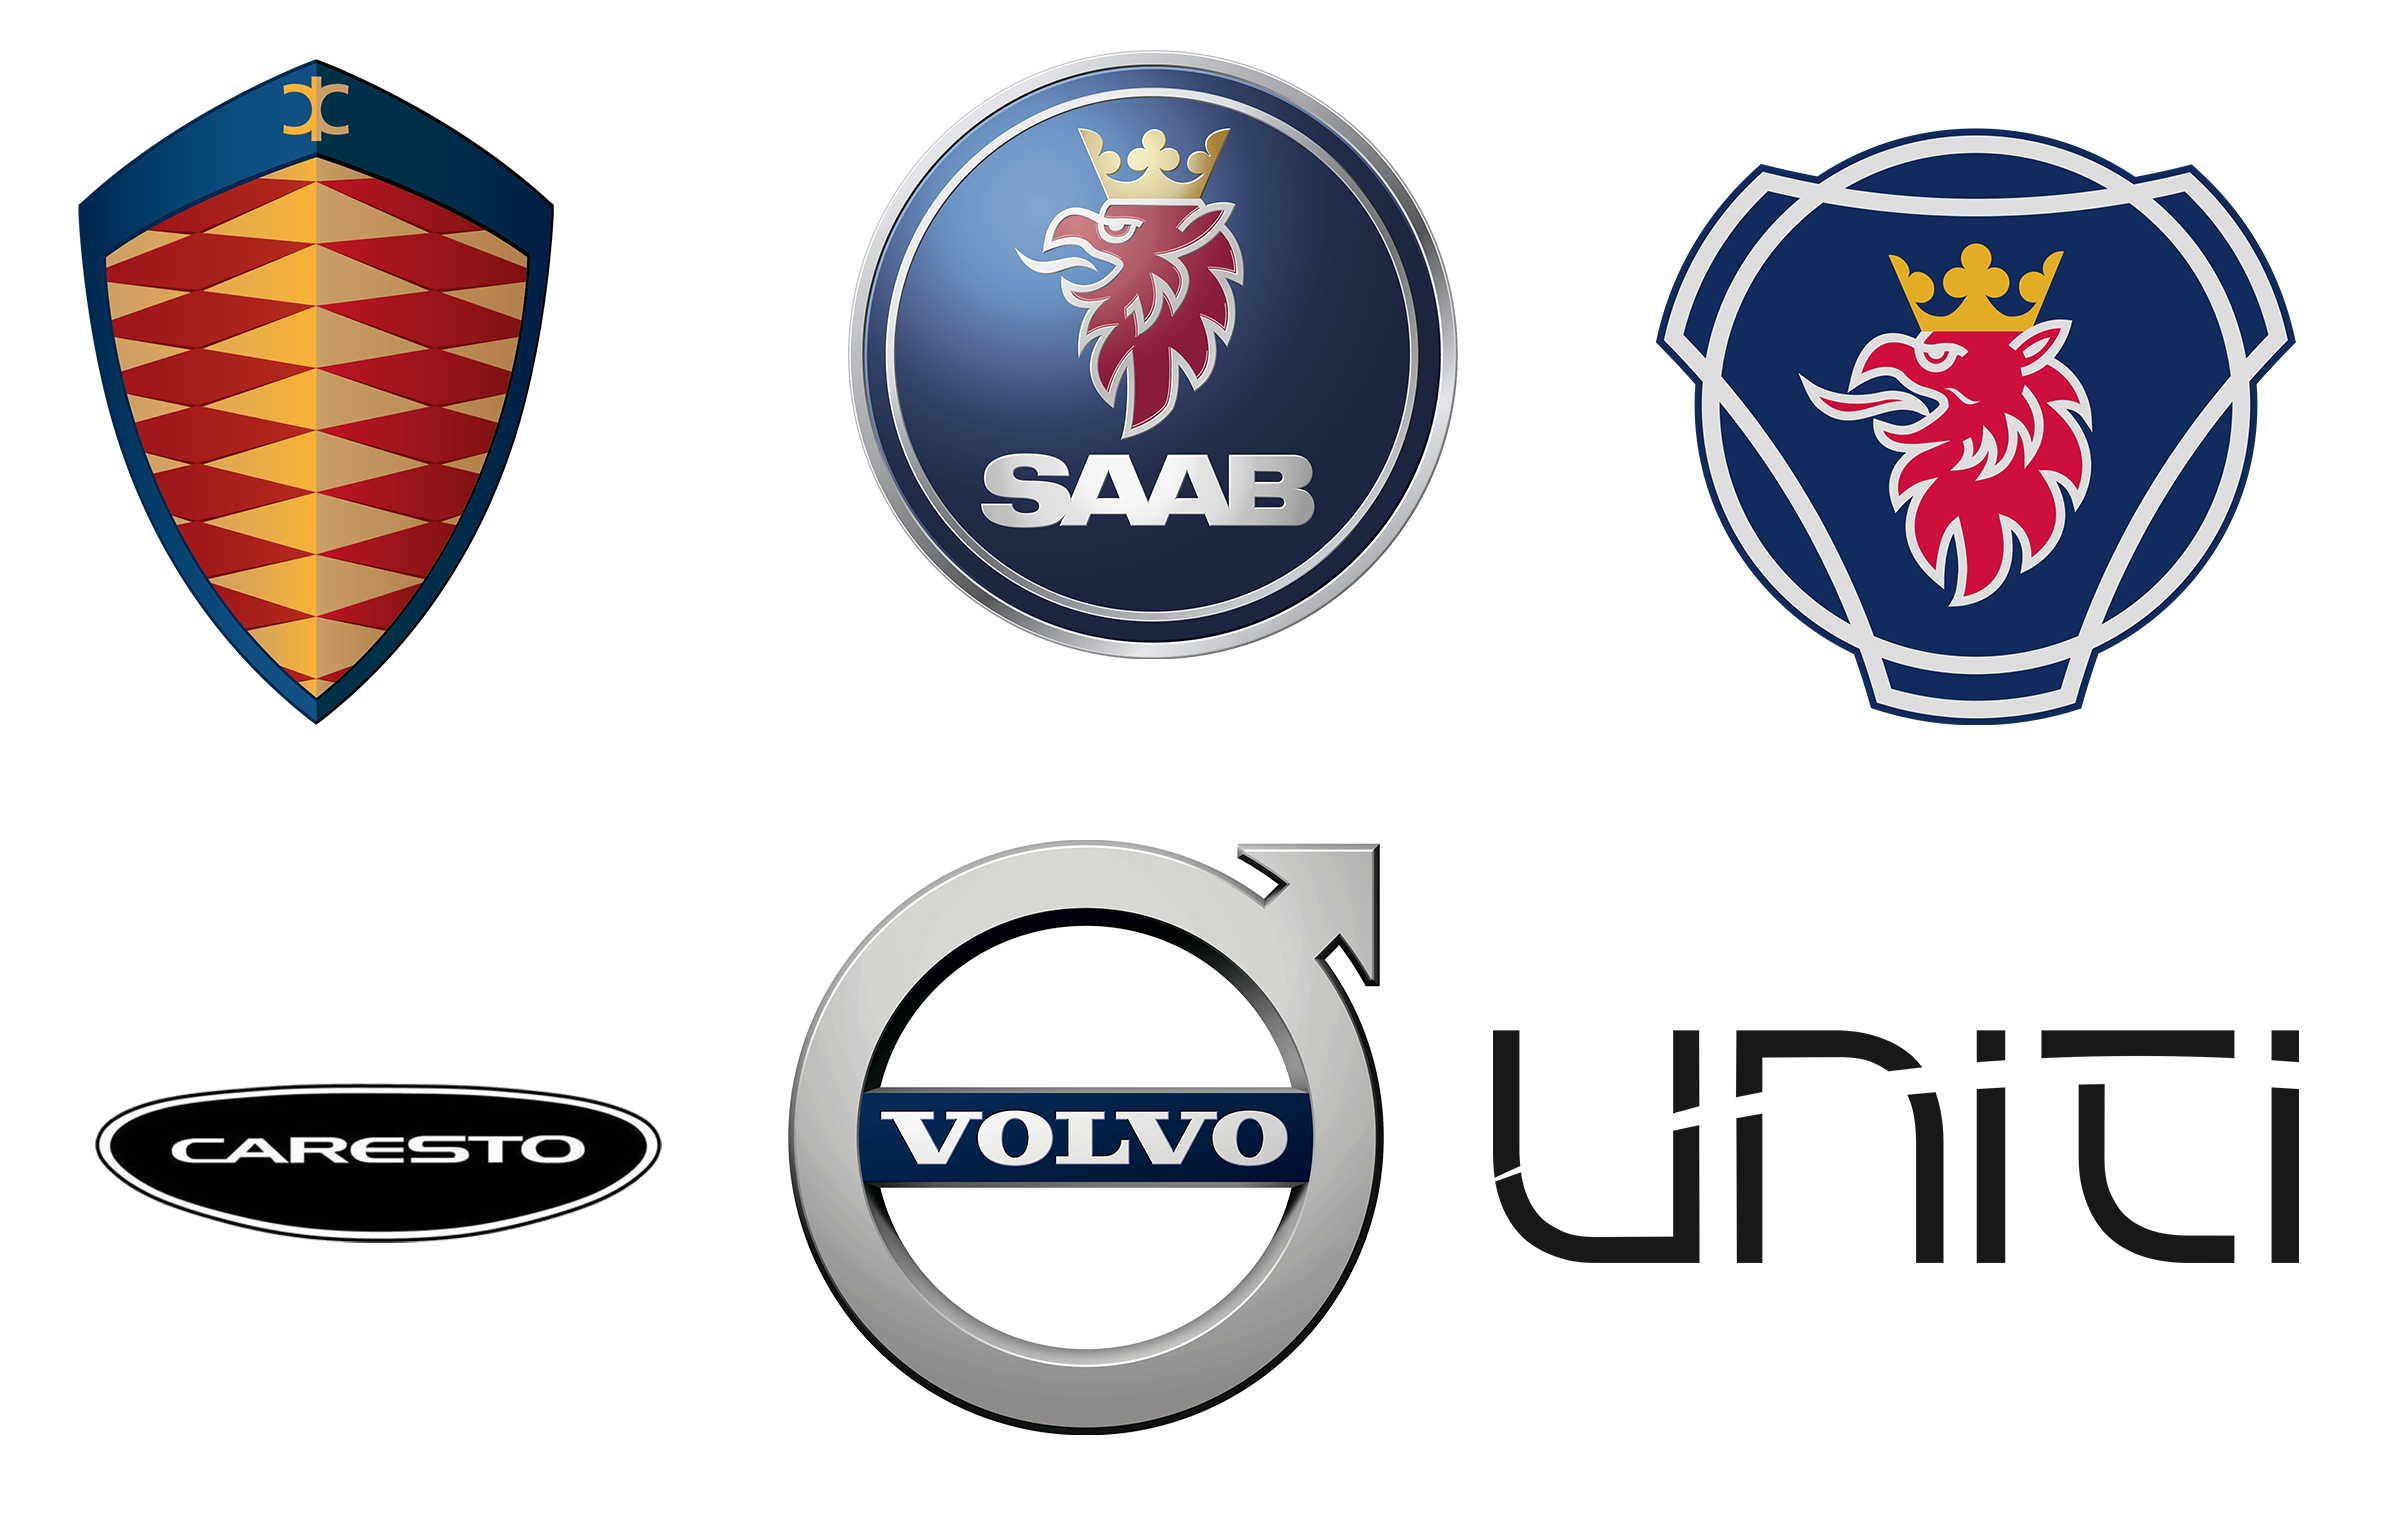 Swedish Car Brands Companies And Manufacturers Car Brand Names Com